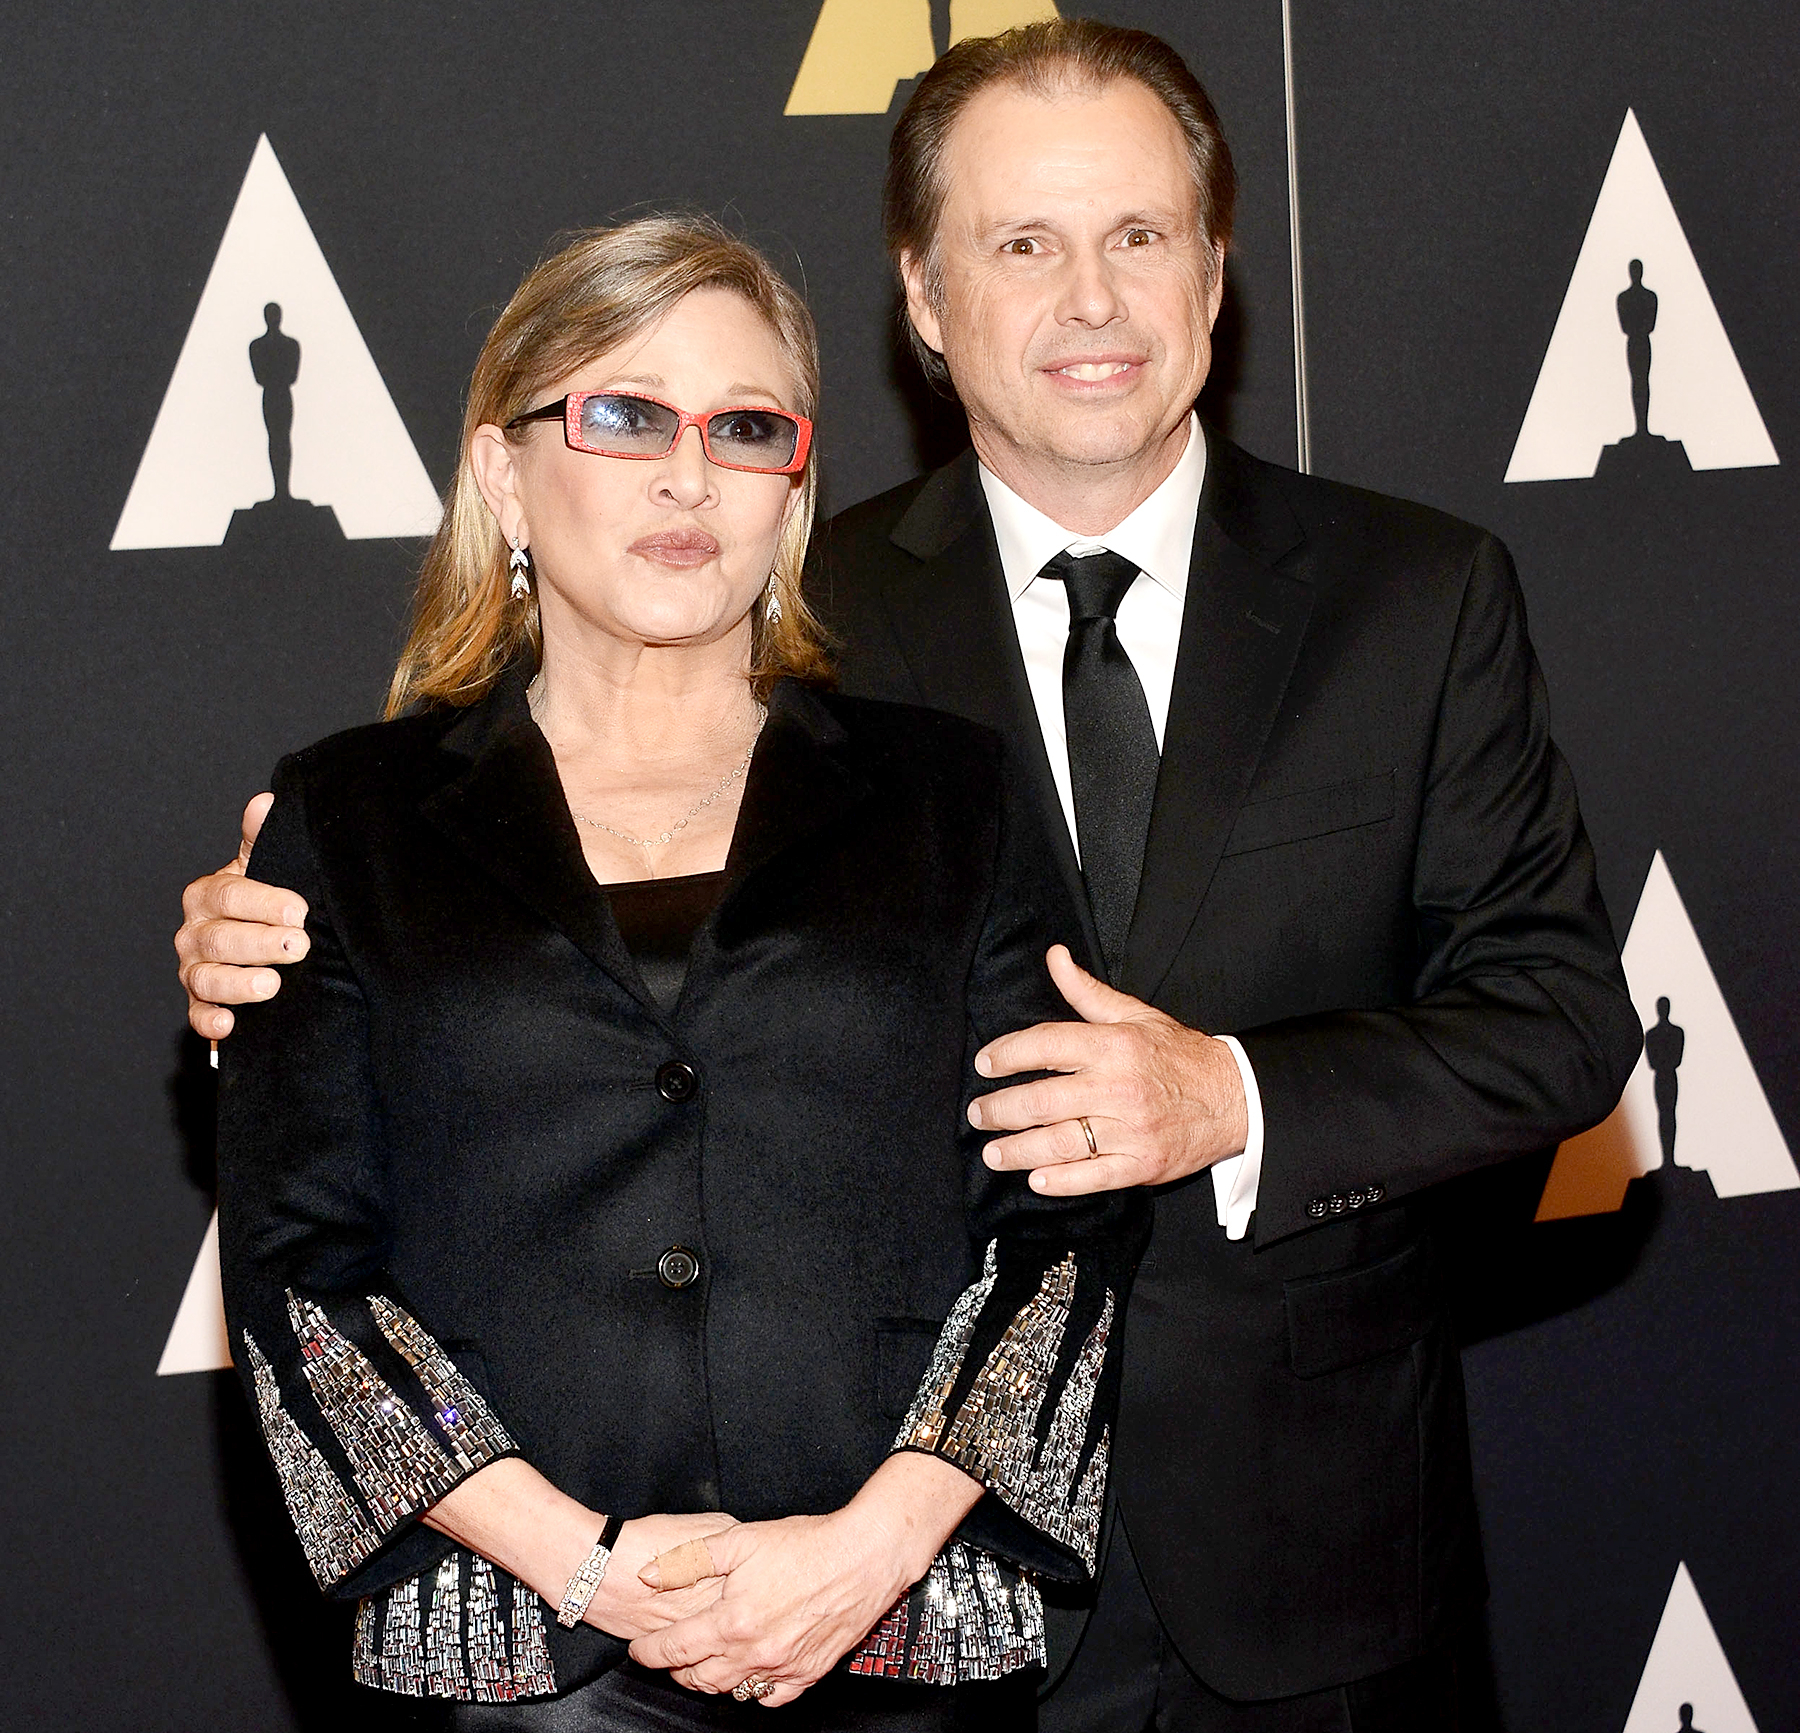 Carrie Fisher and Todd Fisher attend the Academy of Motion Picture Arts and Sciences' 7th Annual Governors Awards at The Ray Dolby Ballroom at Hollywood & Highland Center on November 14, 2015 in Hollywood, California.